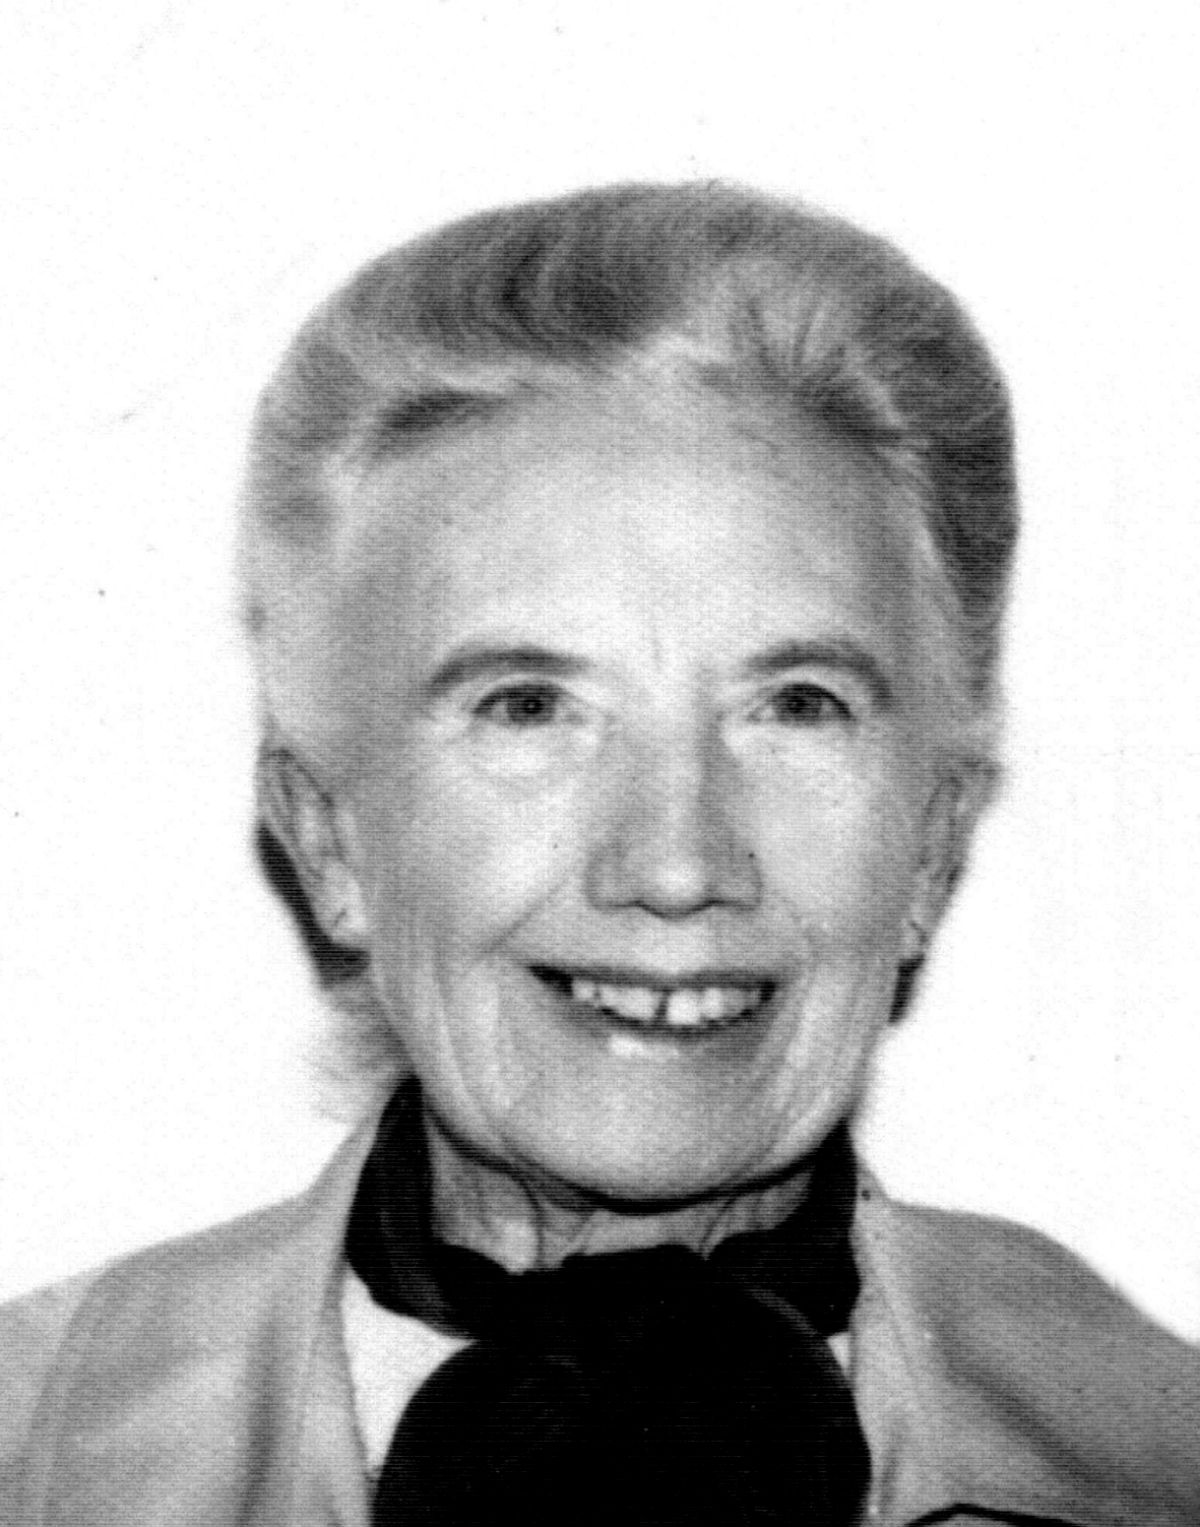 Choral singer Edith Violet Tyler, who has died aged 85.